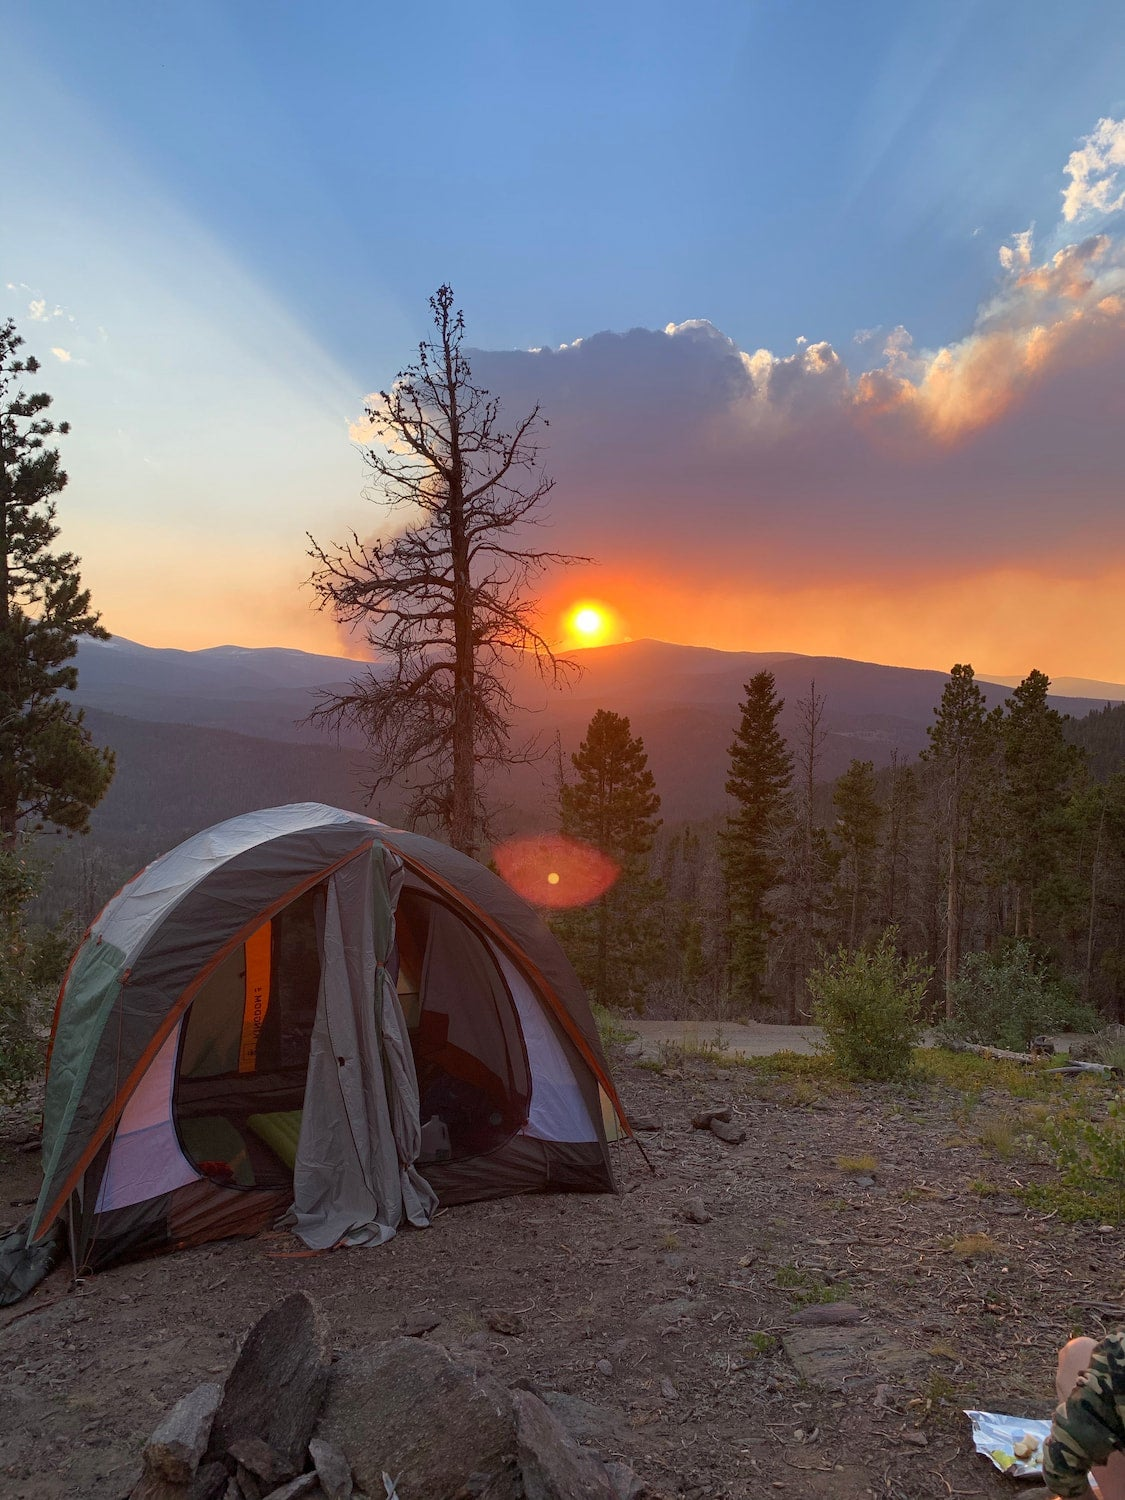 The sun setting behind a mountain with a tent at forested campsite in the foreground.